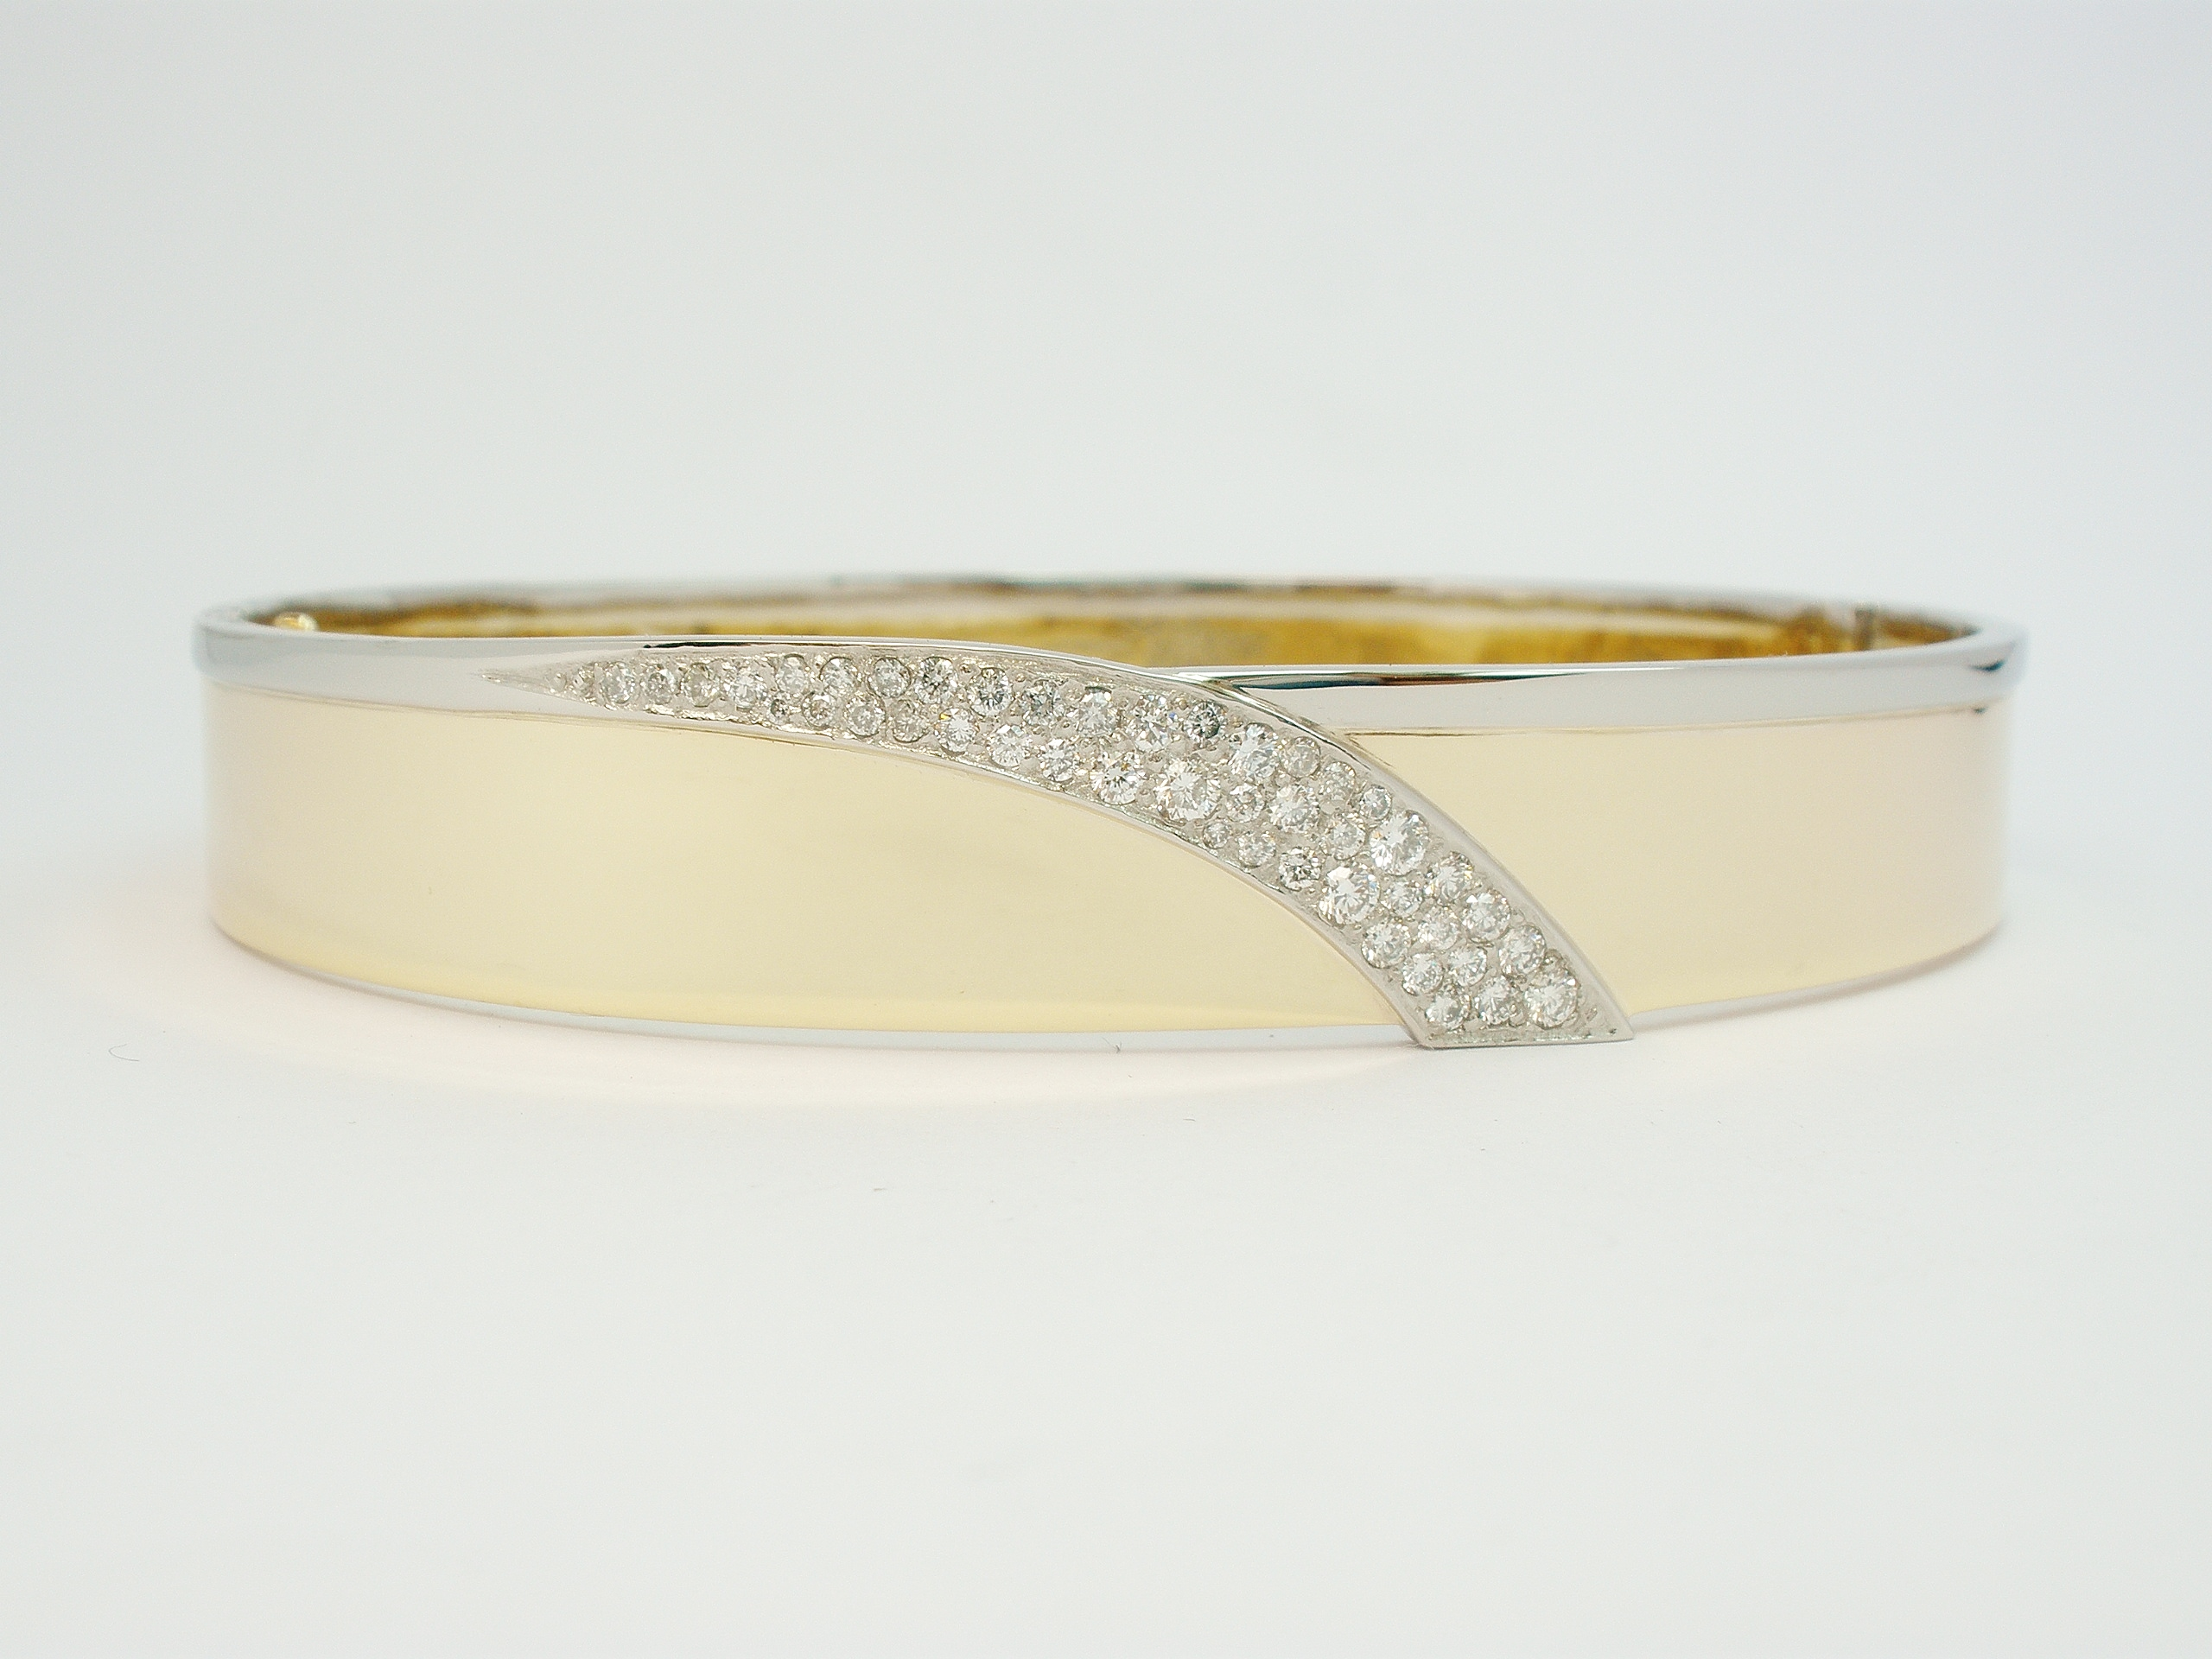 9ct yellow gold and palladium hand crafted hinged bangle with a central cascade shaped palladium panel Pave set with diamonds.